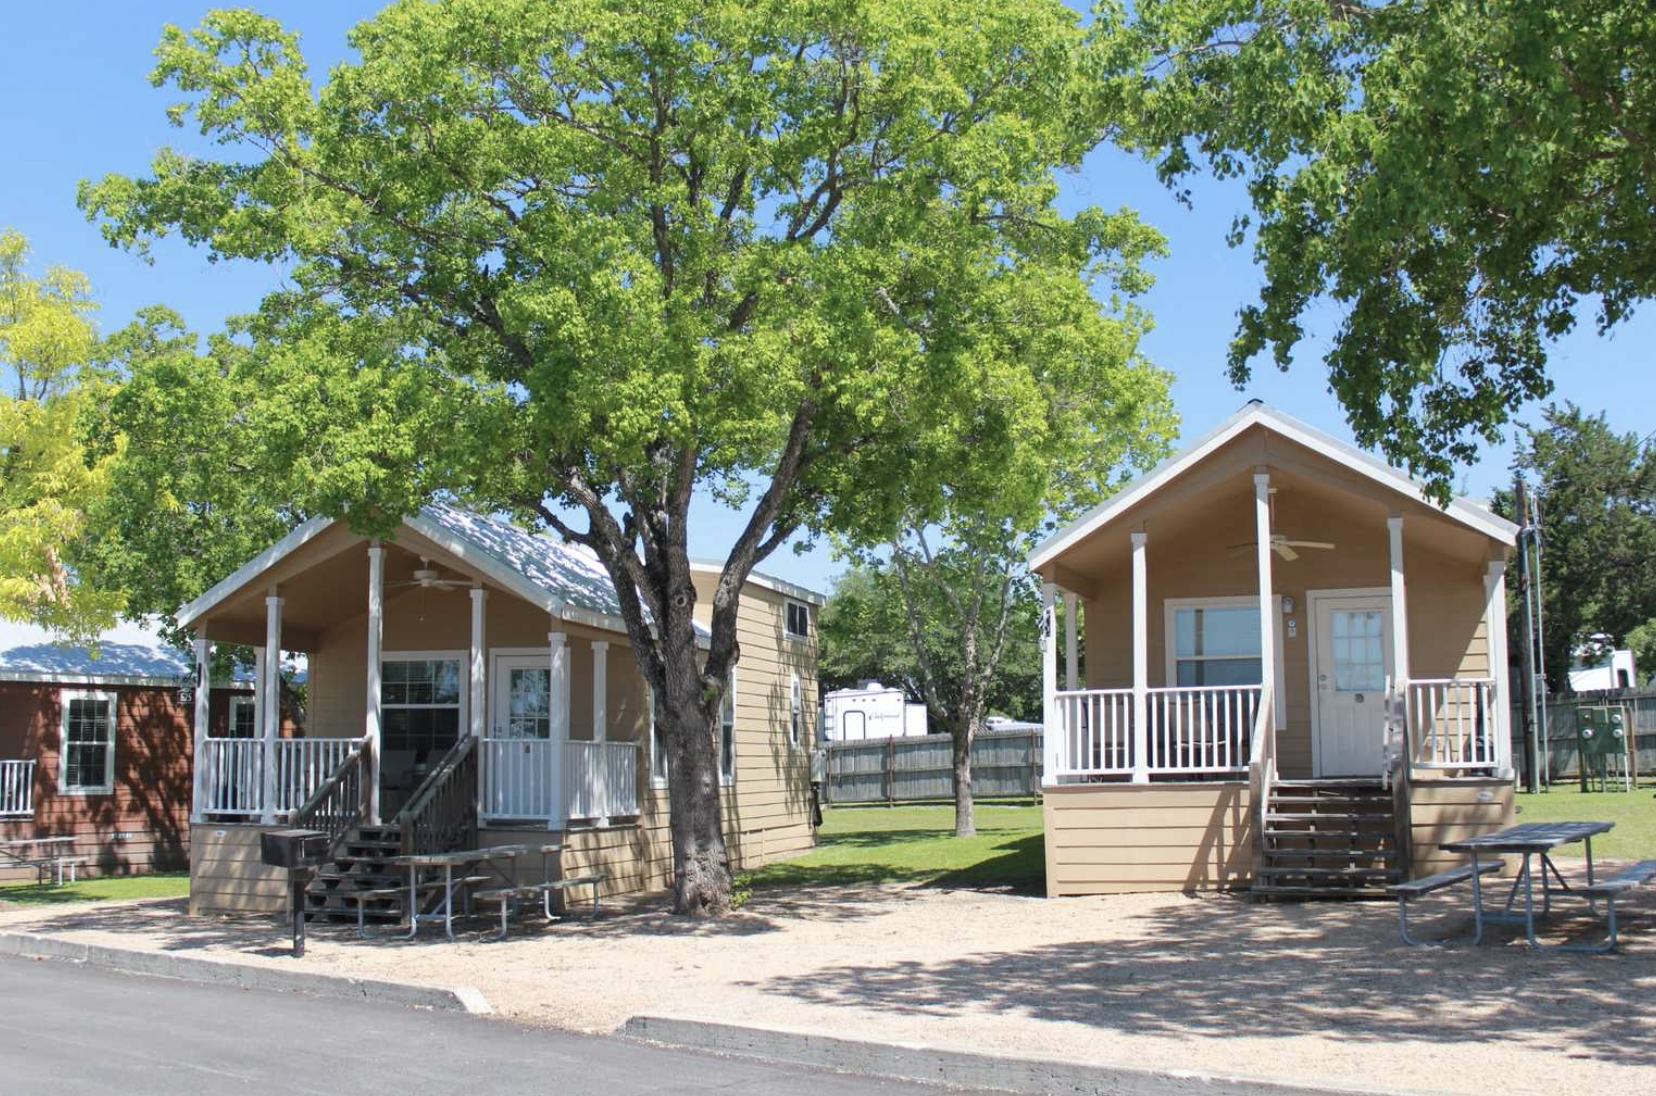 Cabins at Texas campground with trees and blu sky